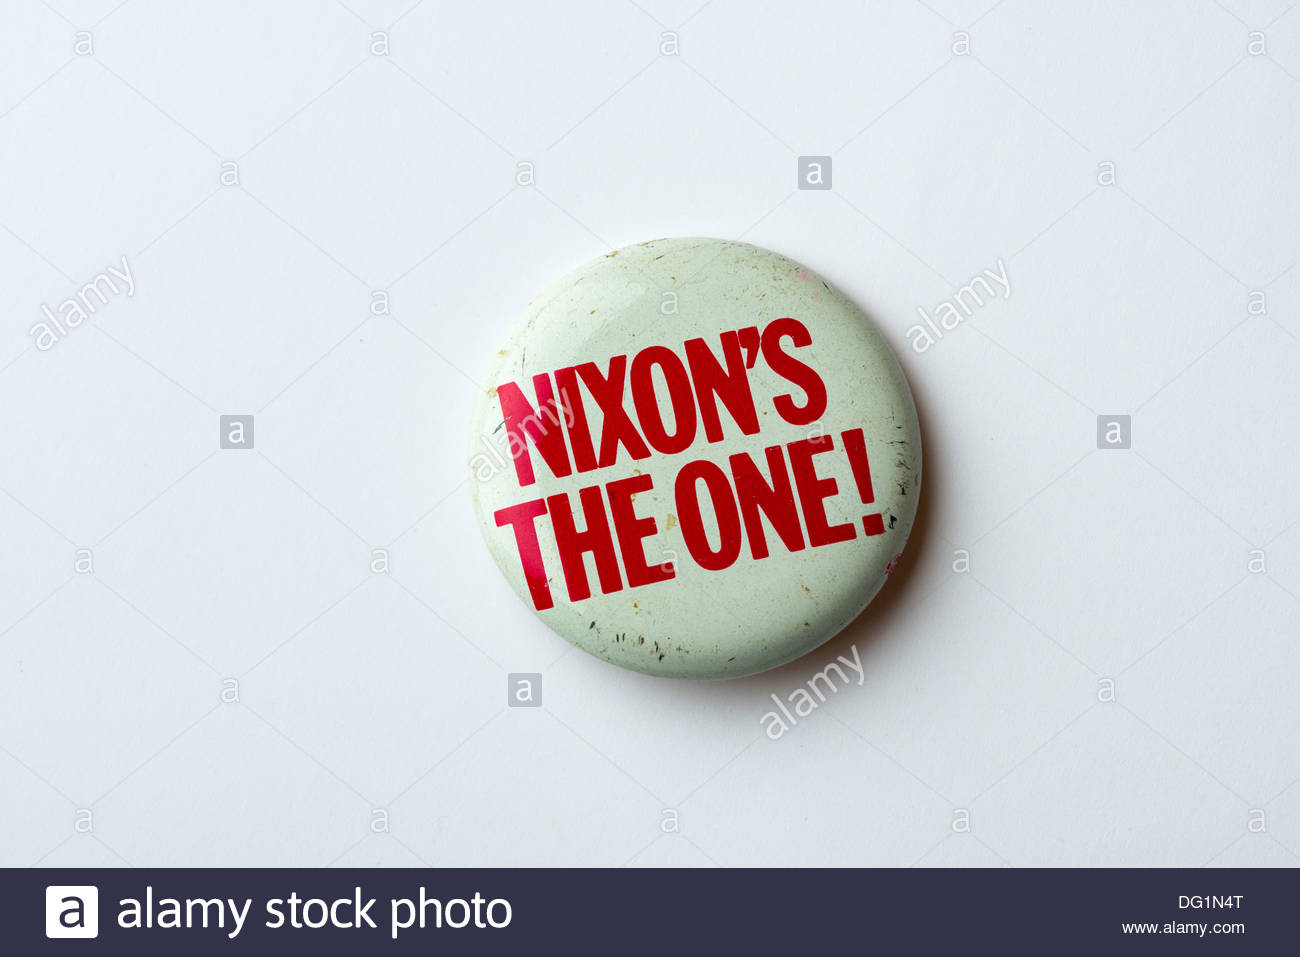 A political button from the seventies. - Stock Image